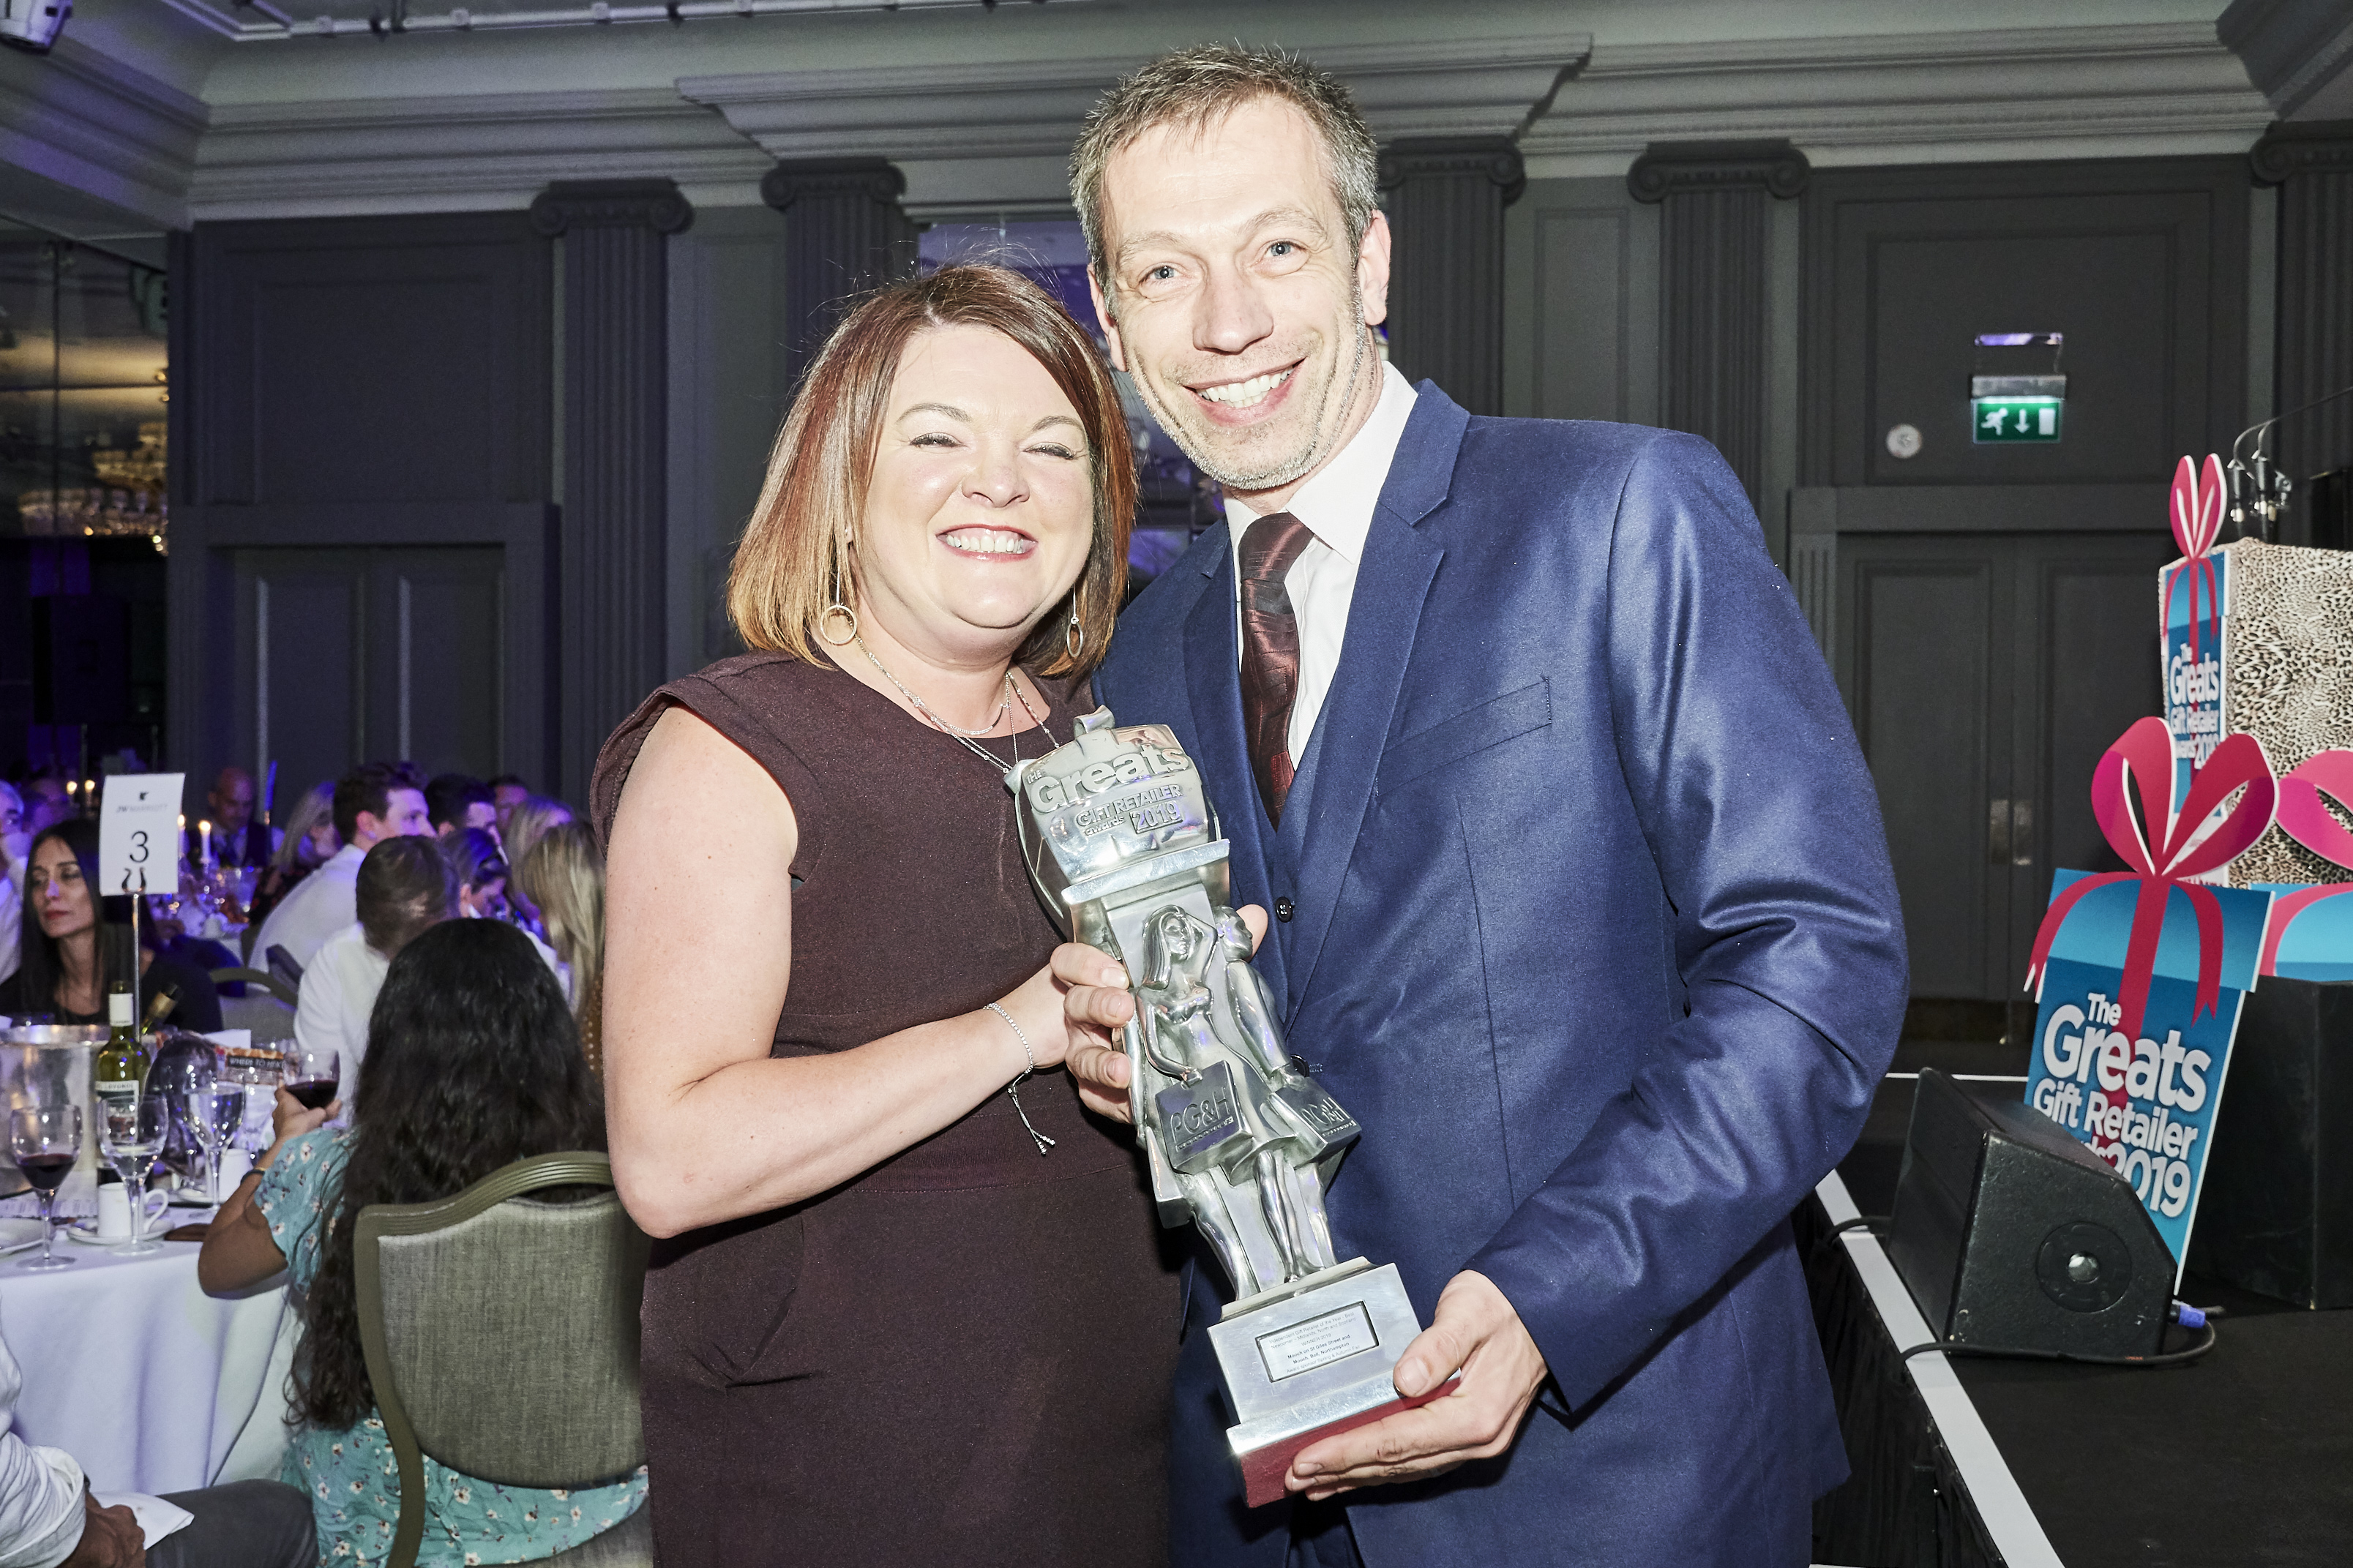 Above: Paul and Rachel Roberts with their The Greats 2019 gift retailer award they won last May.